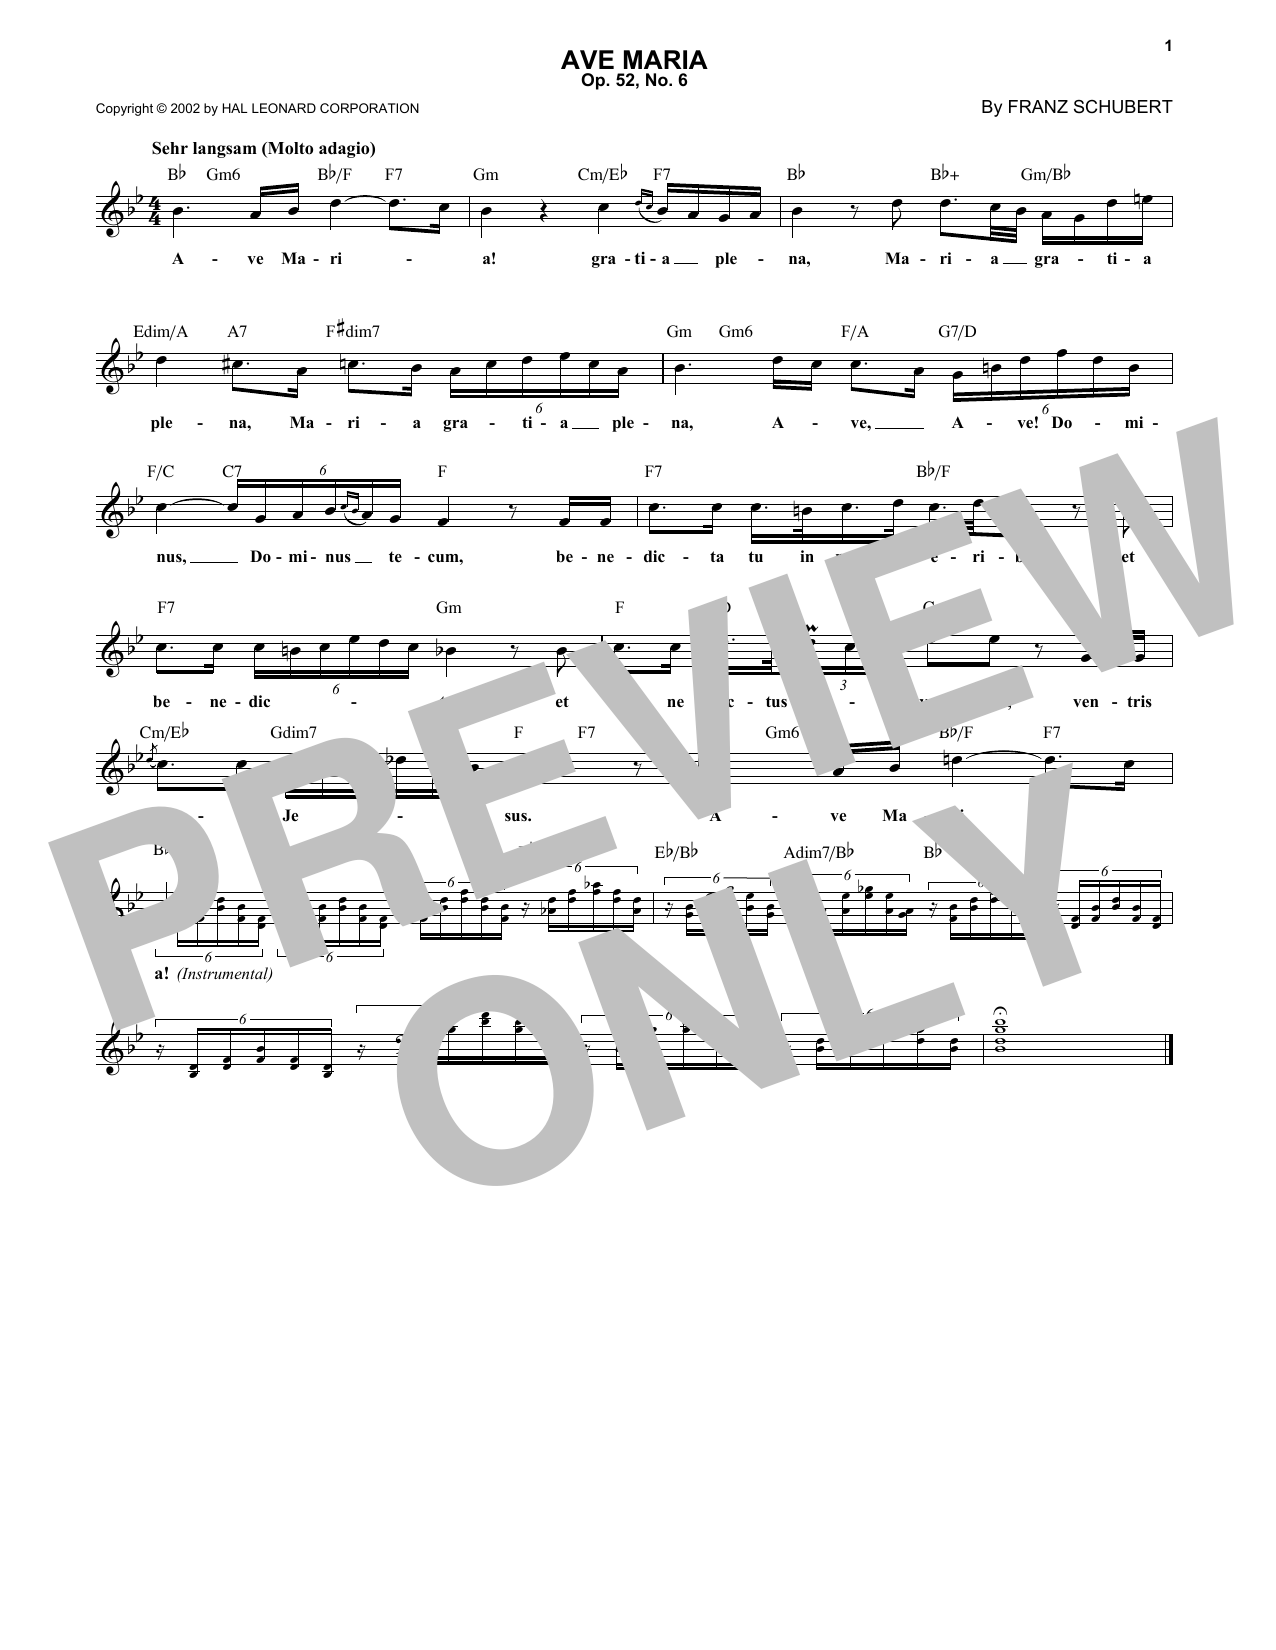 Franz Schubert Ave Maria, Op. 52, No. 6 sheet music notes and chords. Download Printable PDF.